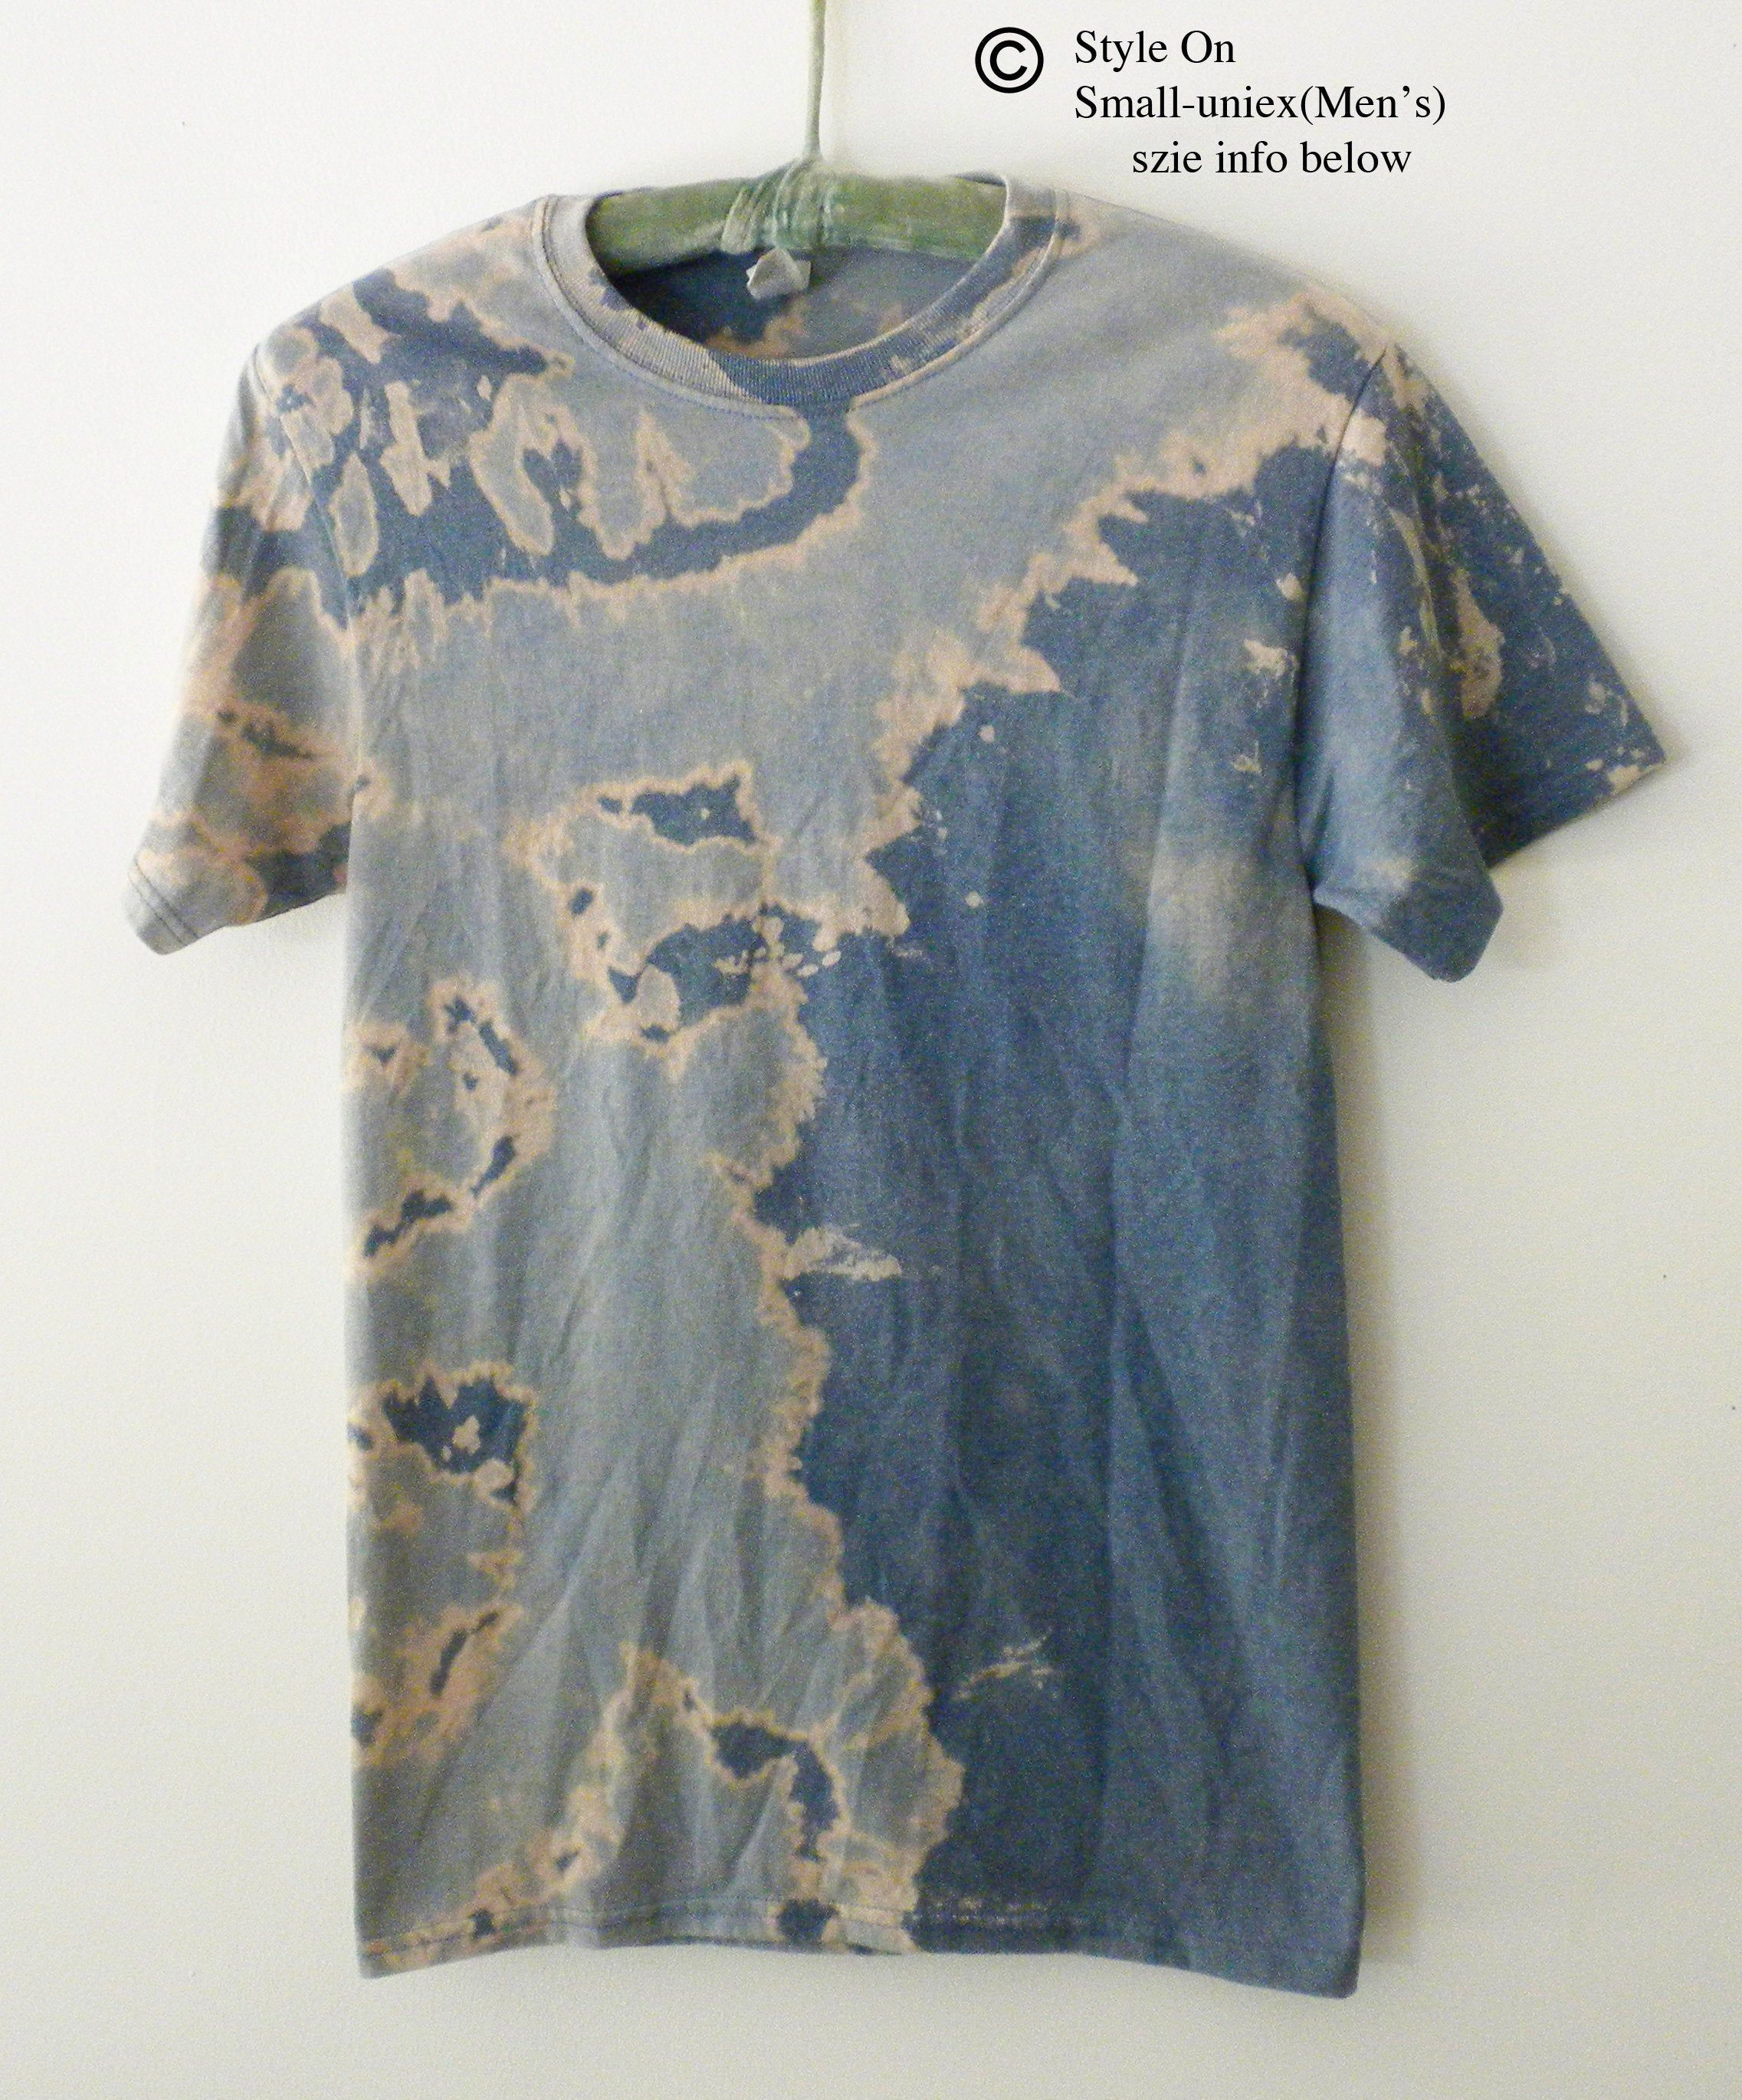 Pin On Tee Shirts From Style On